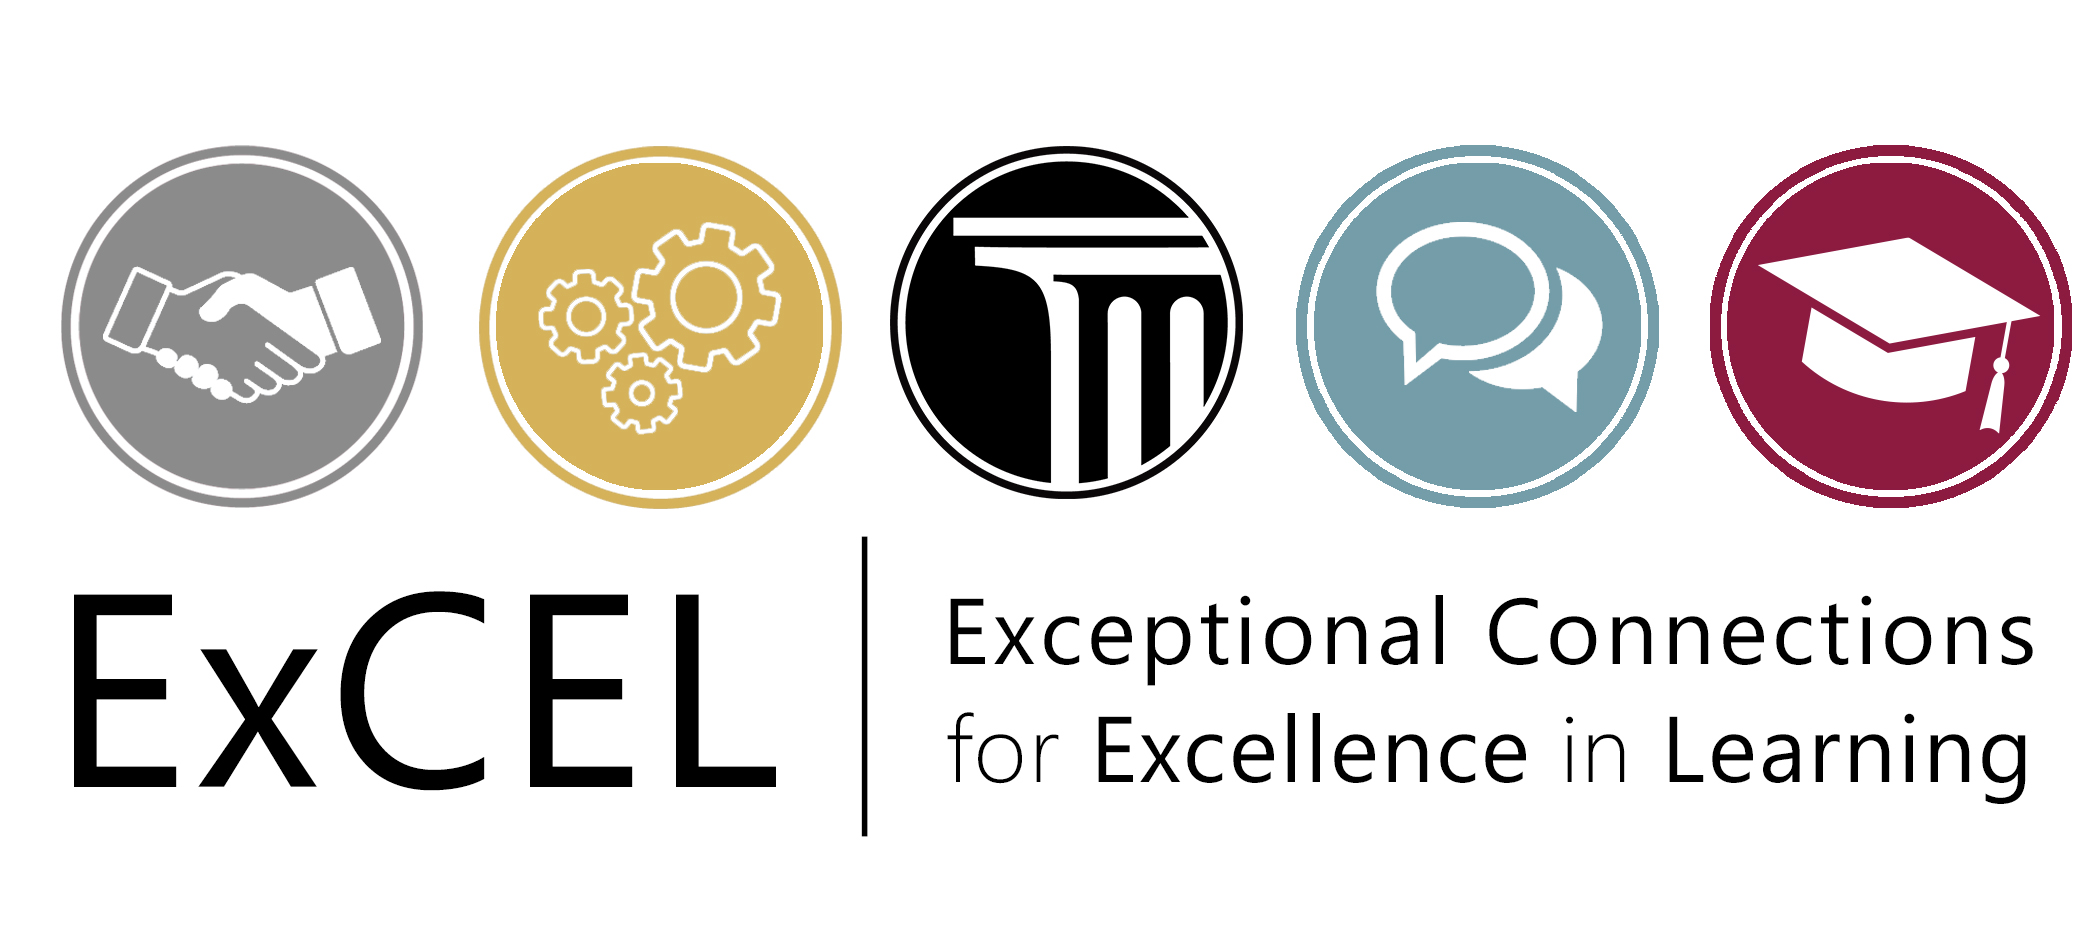 ExCEL: Exceptional Connections for Excellence in Learning